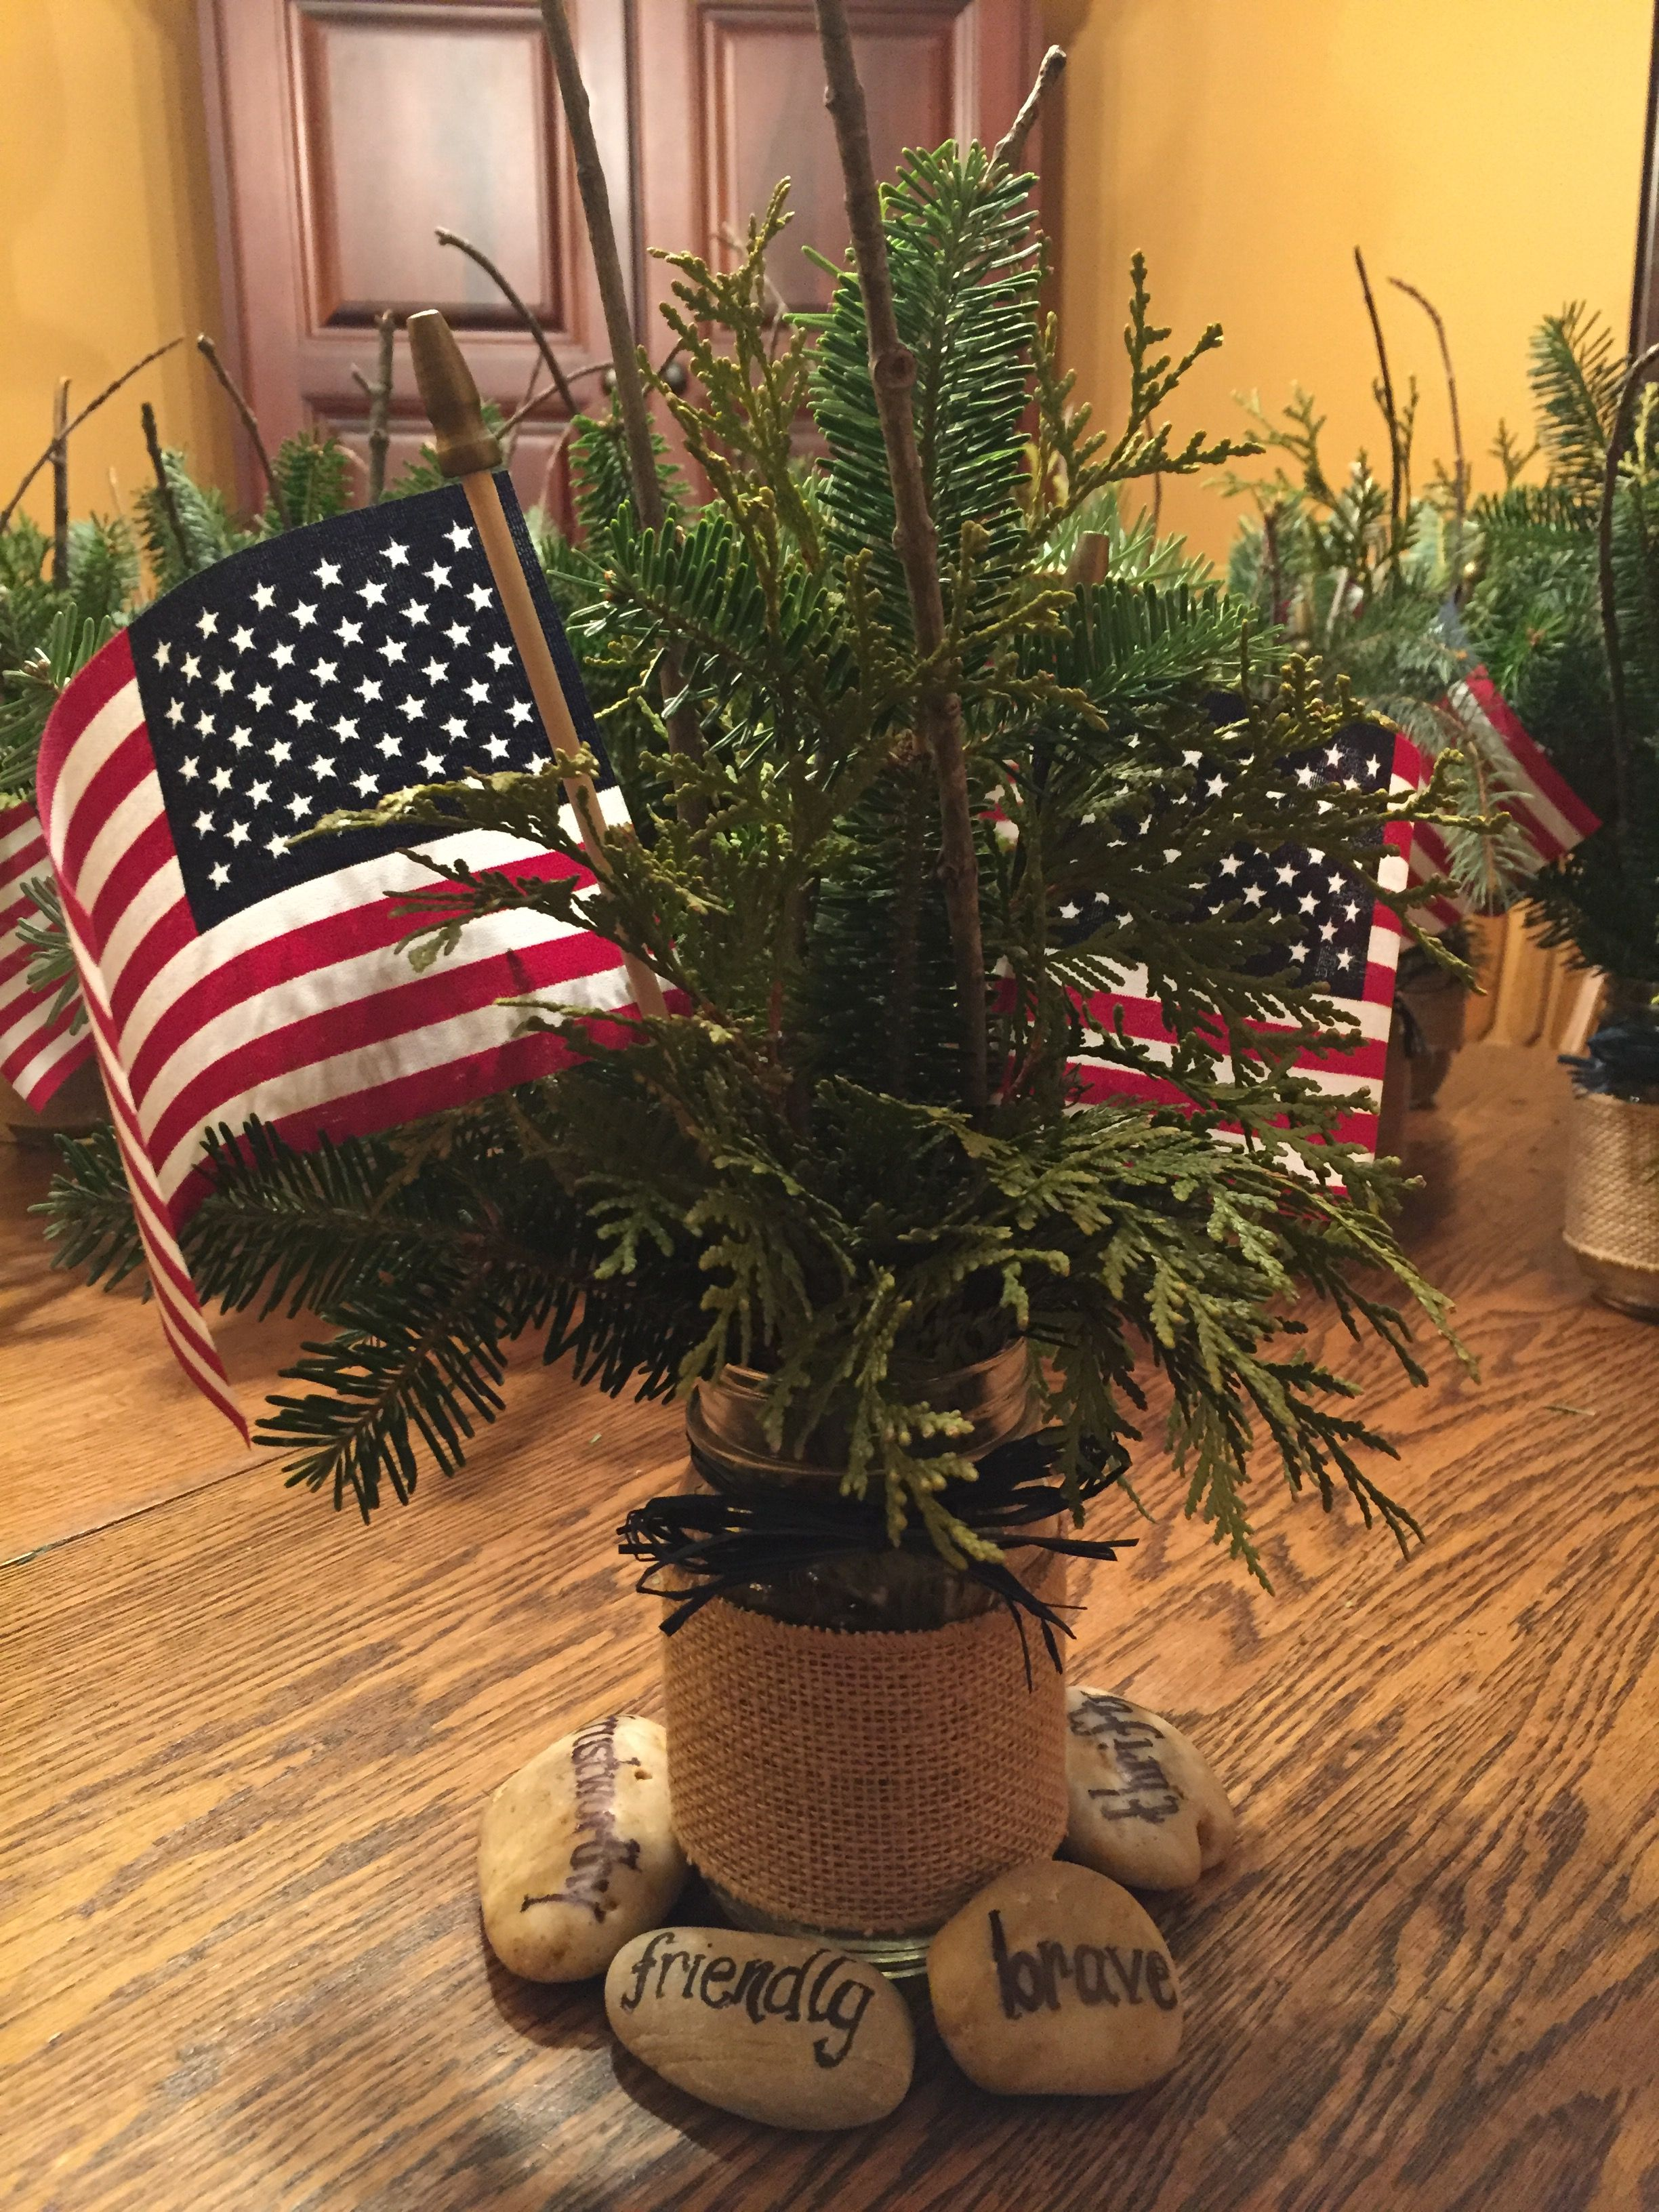 Eagle scout court of honor centerpiece assorted evergreens